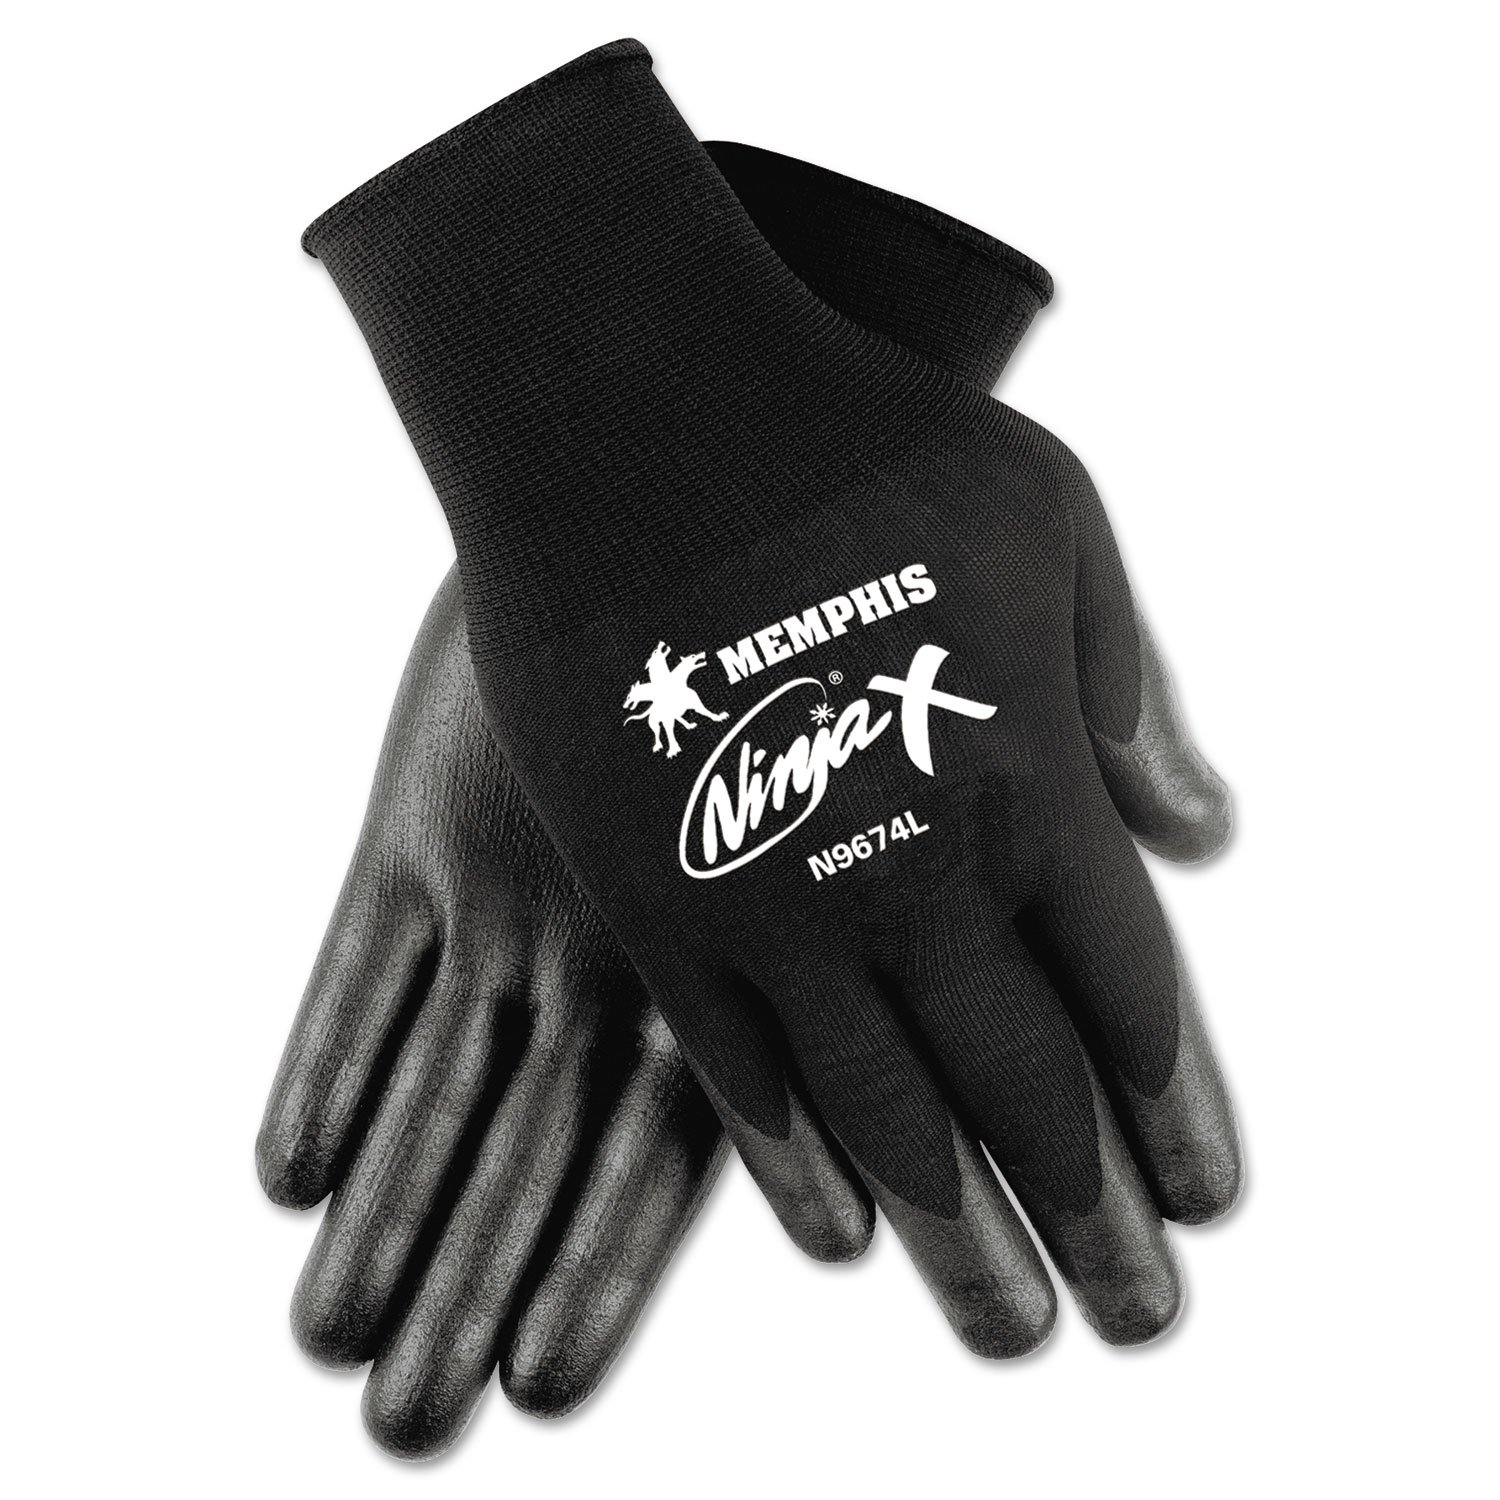 Memphis N9674S Ninja x Bi-Polymer Coated Gloves, Small, Black, Pair by Janitorial Supplies (Image #1)